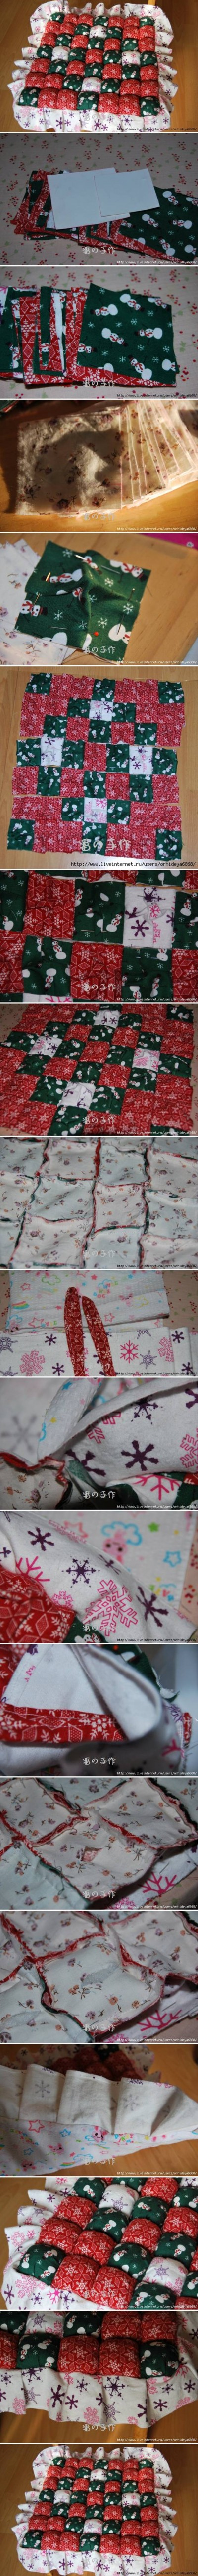 How to make Patchwork Pillow step by step DIY instructions